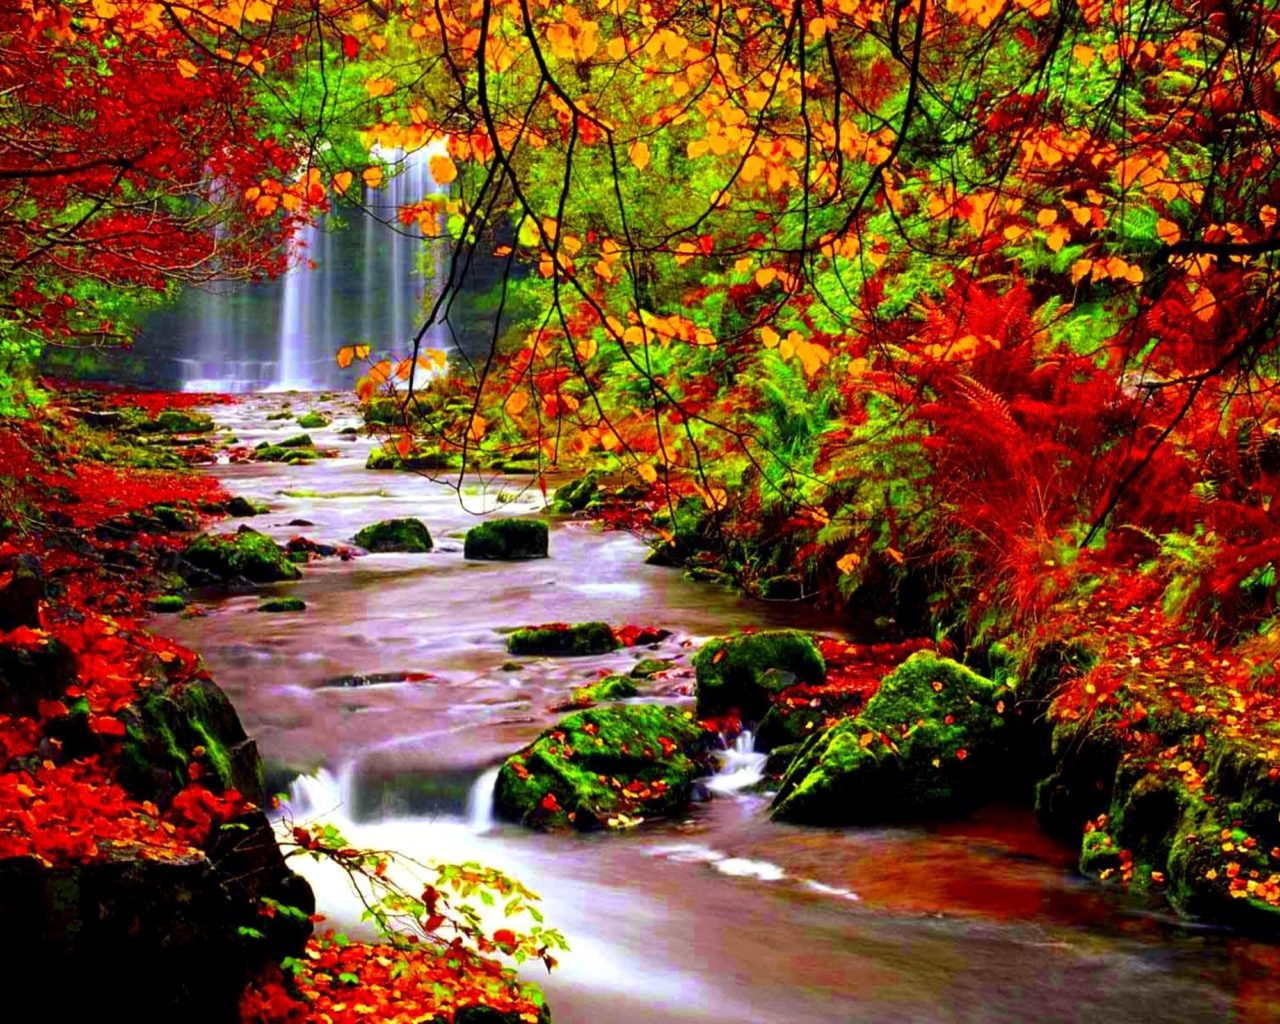 Fall Pc Wallpaper Free Autumn Scenery Stream River In Autumn Trees With Red